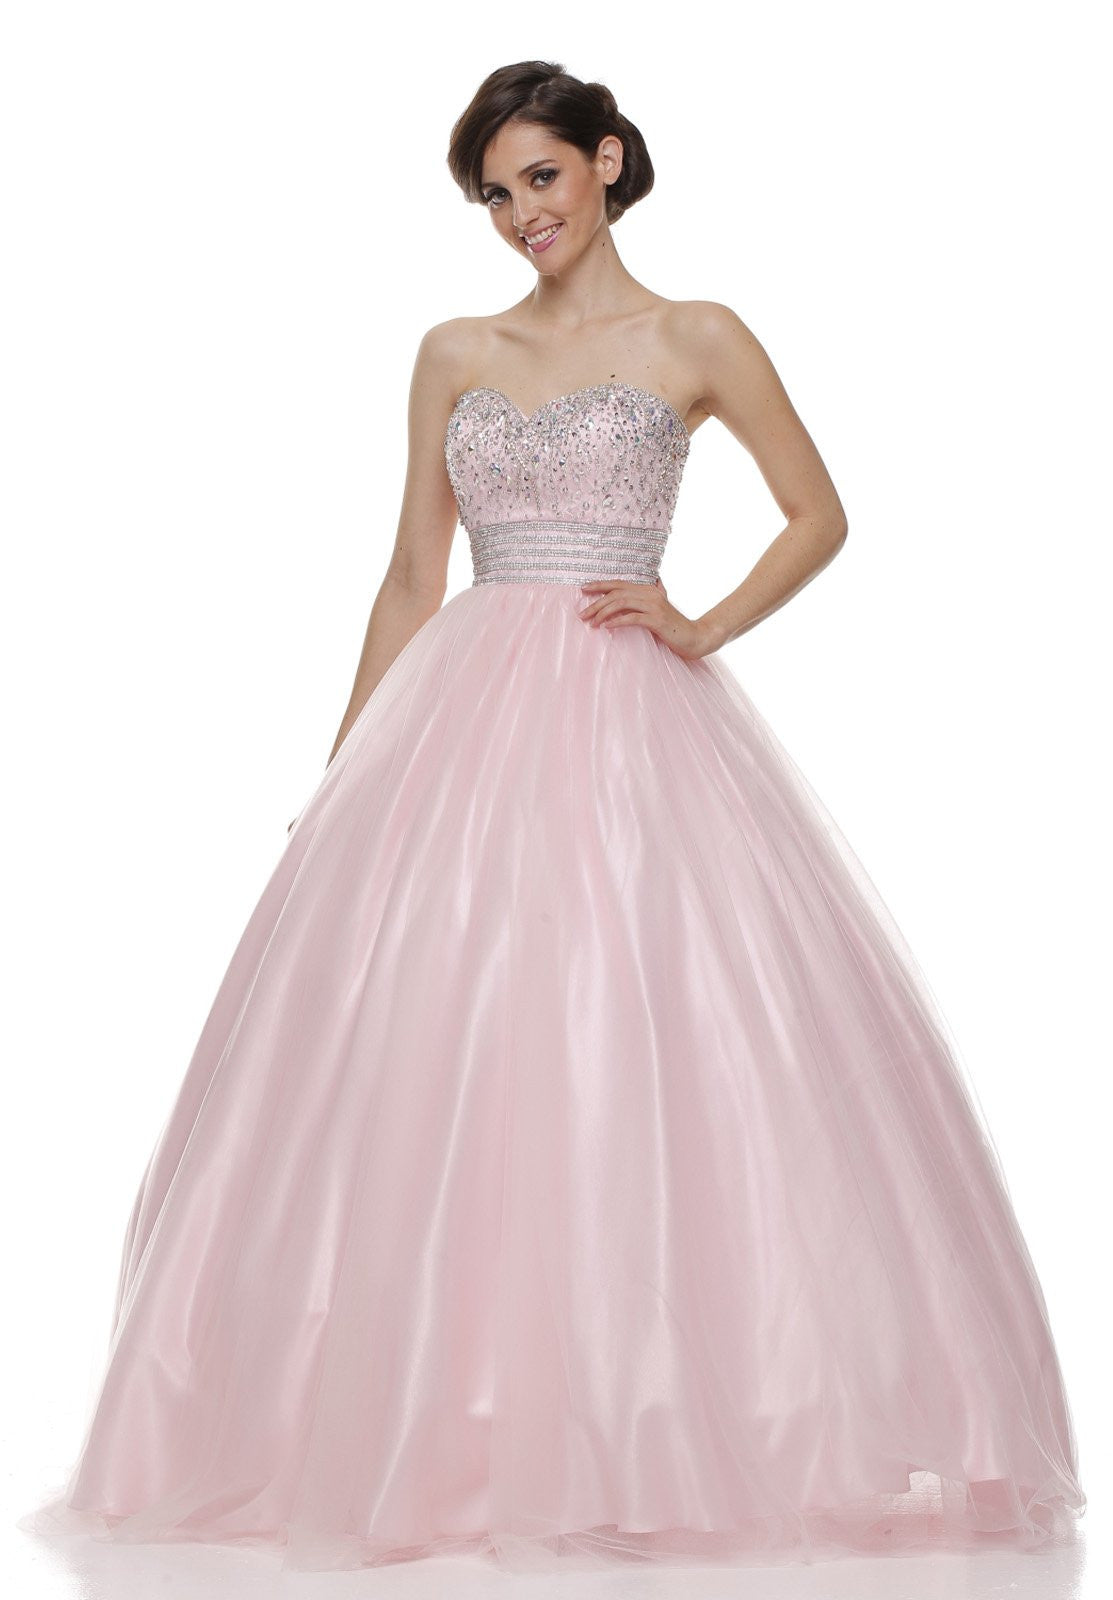 Beaded Empire Waist Corset Bodice Light Pink Strapless Ball Gown ...